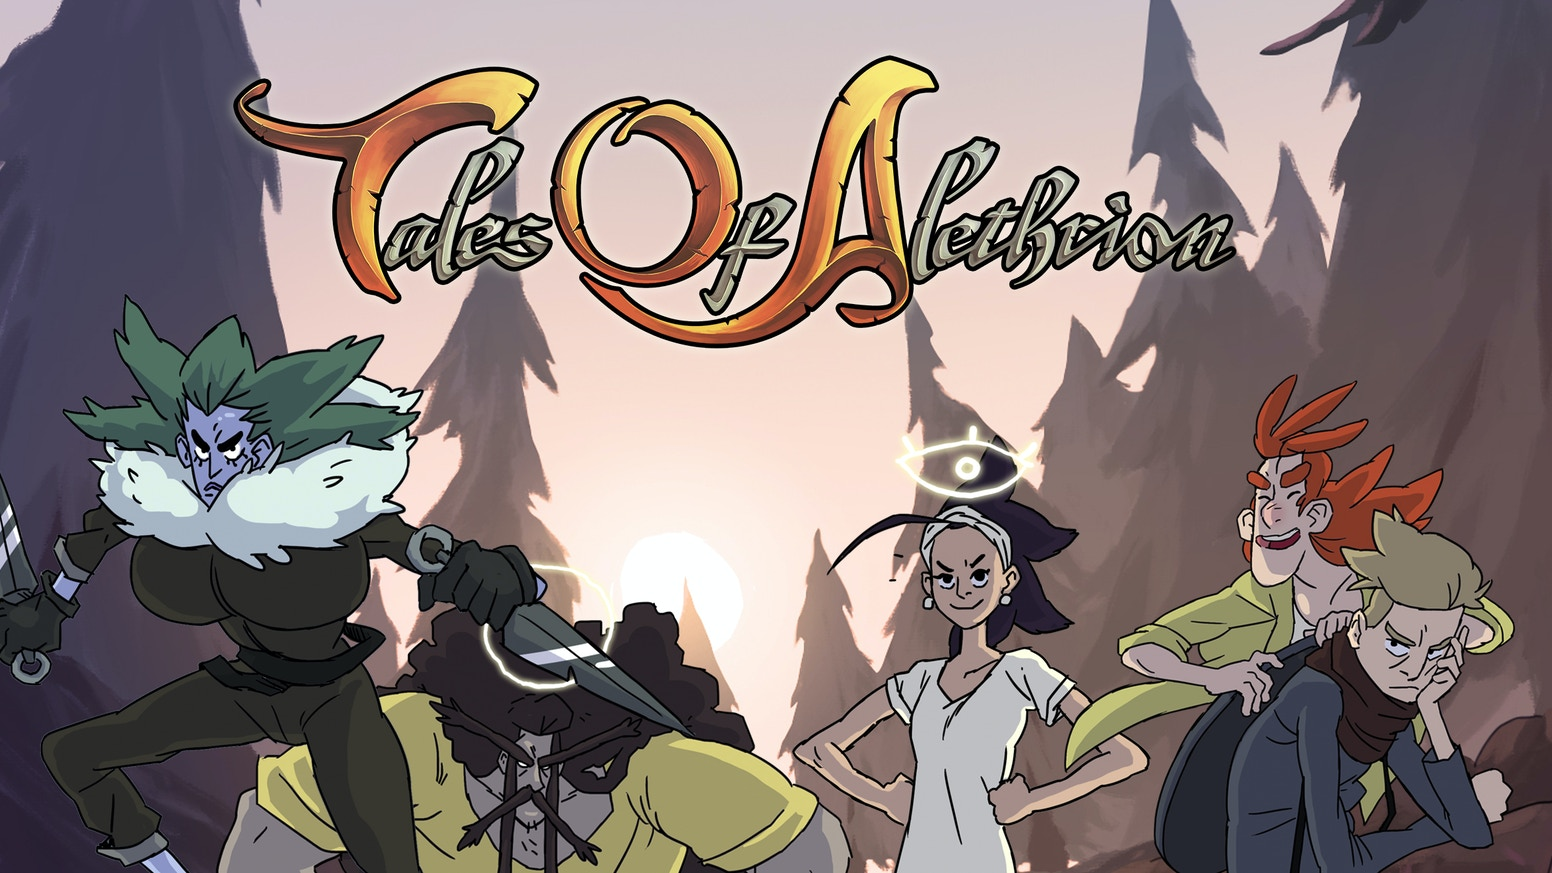 """The Journey continues with our LIVE campaign """"Tales of Alethrion - An Adventure Board Game""""! Help us reach our goal and gather your friends and family for an epic fight NOW!"""